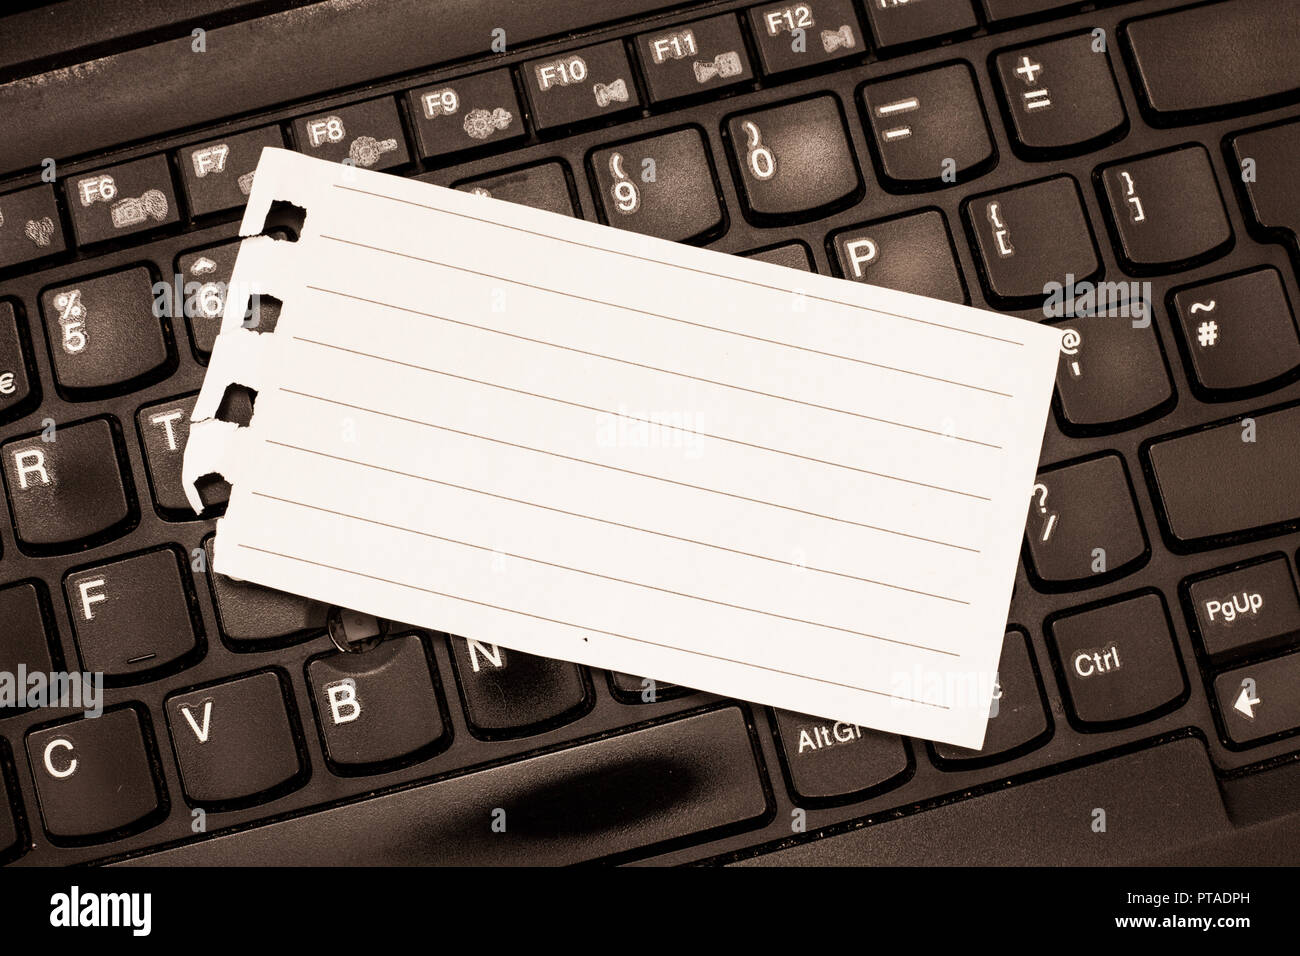 sheet lined note paper torn stock photos sheet lined note paper